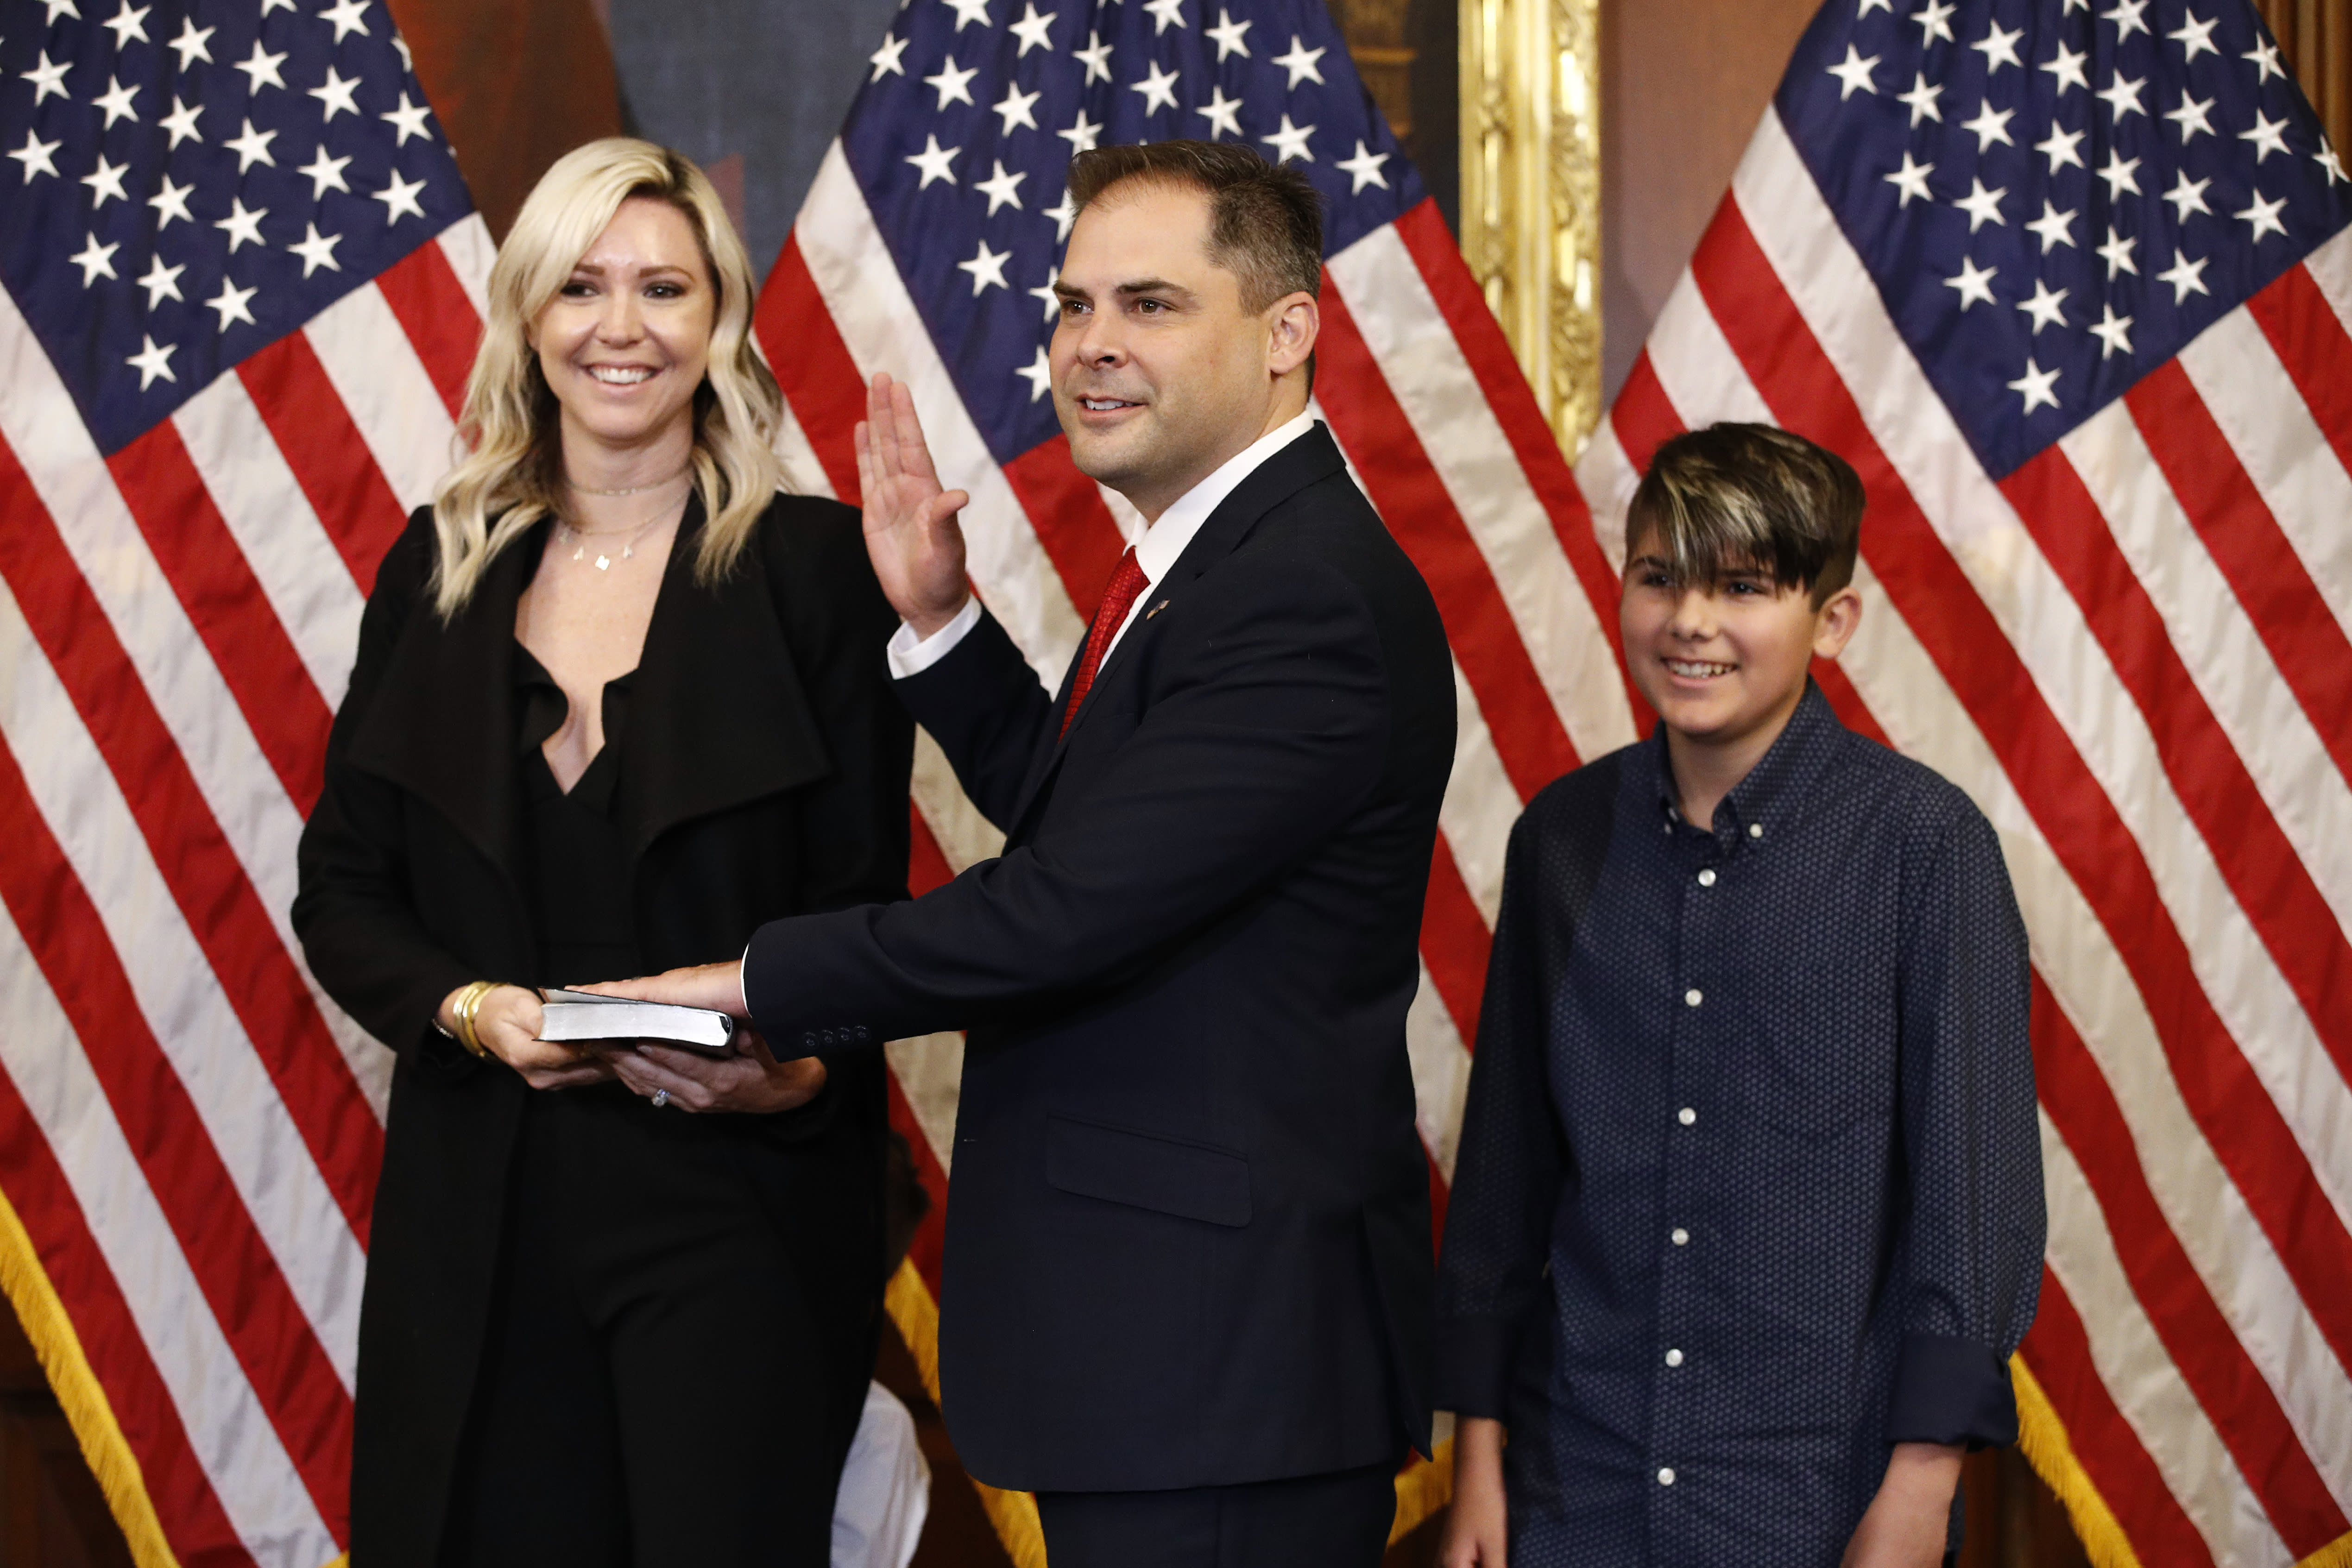 R-Calif. center joined by his wife Rebecca and son Preston participates in a ceremonial swearing-in on Capitol Hill in Washington. Garcia who in a May special election became the first Republic